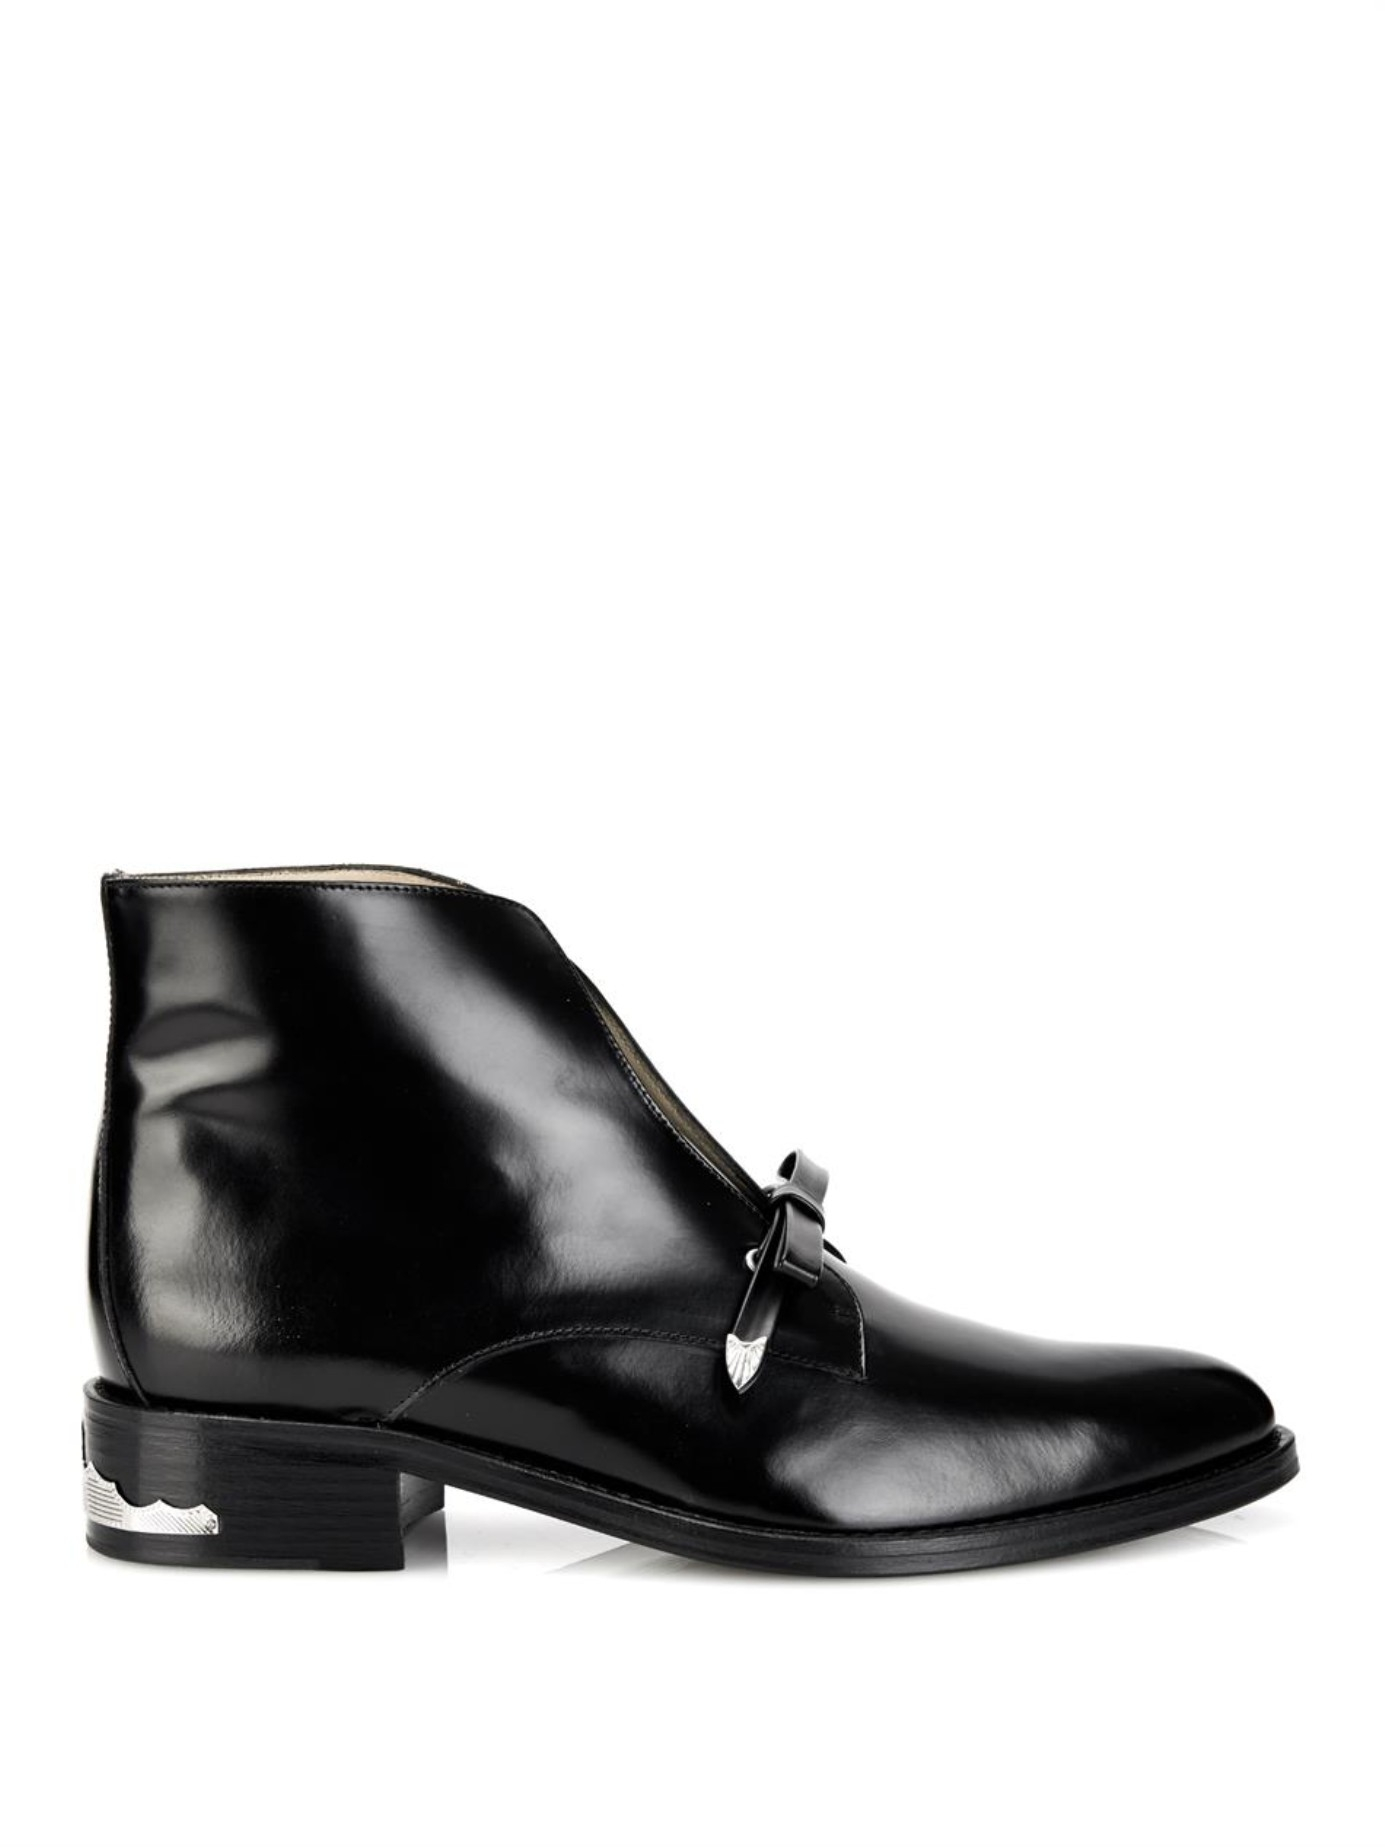 Lyst Toga High Shine Leather Ankle Boots In Black